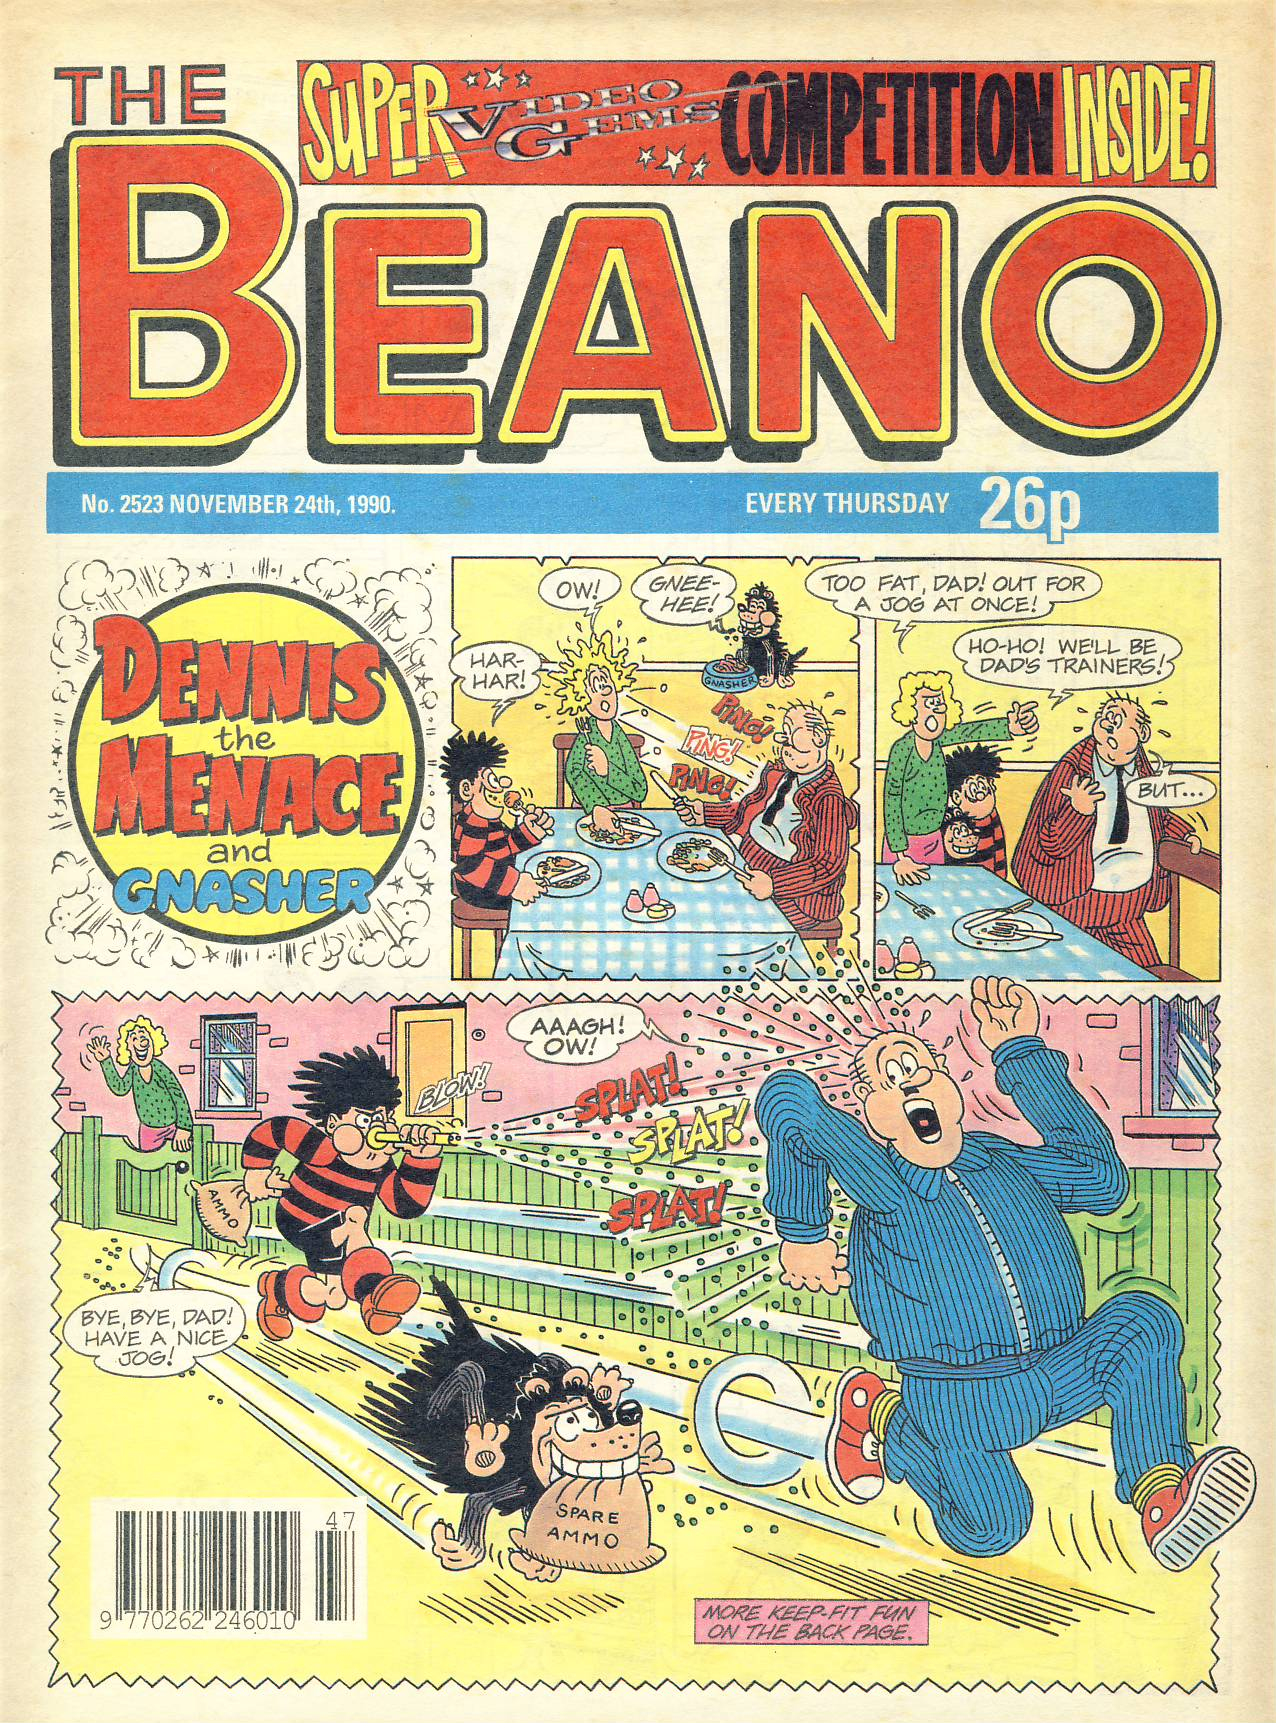 1990 November 24th BEANO vintage comic Good Gift Christmas Present Birthday Anniversary ref316a pre-owned item in good read condition.